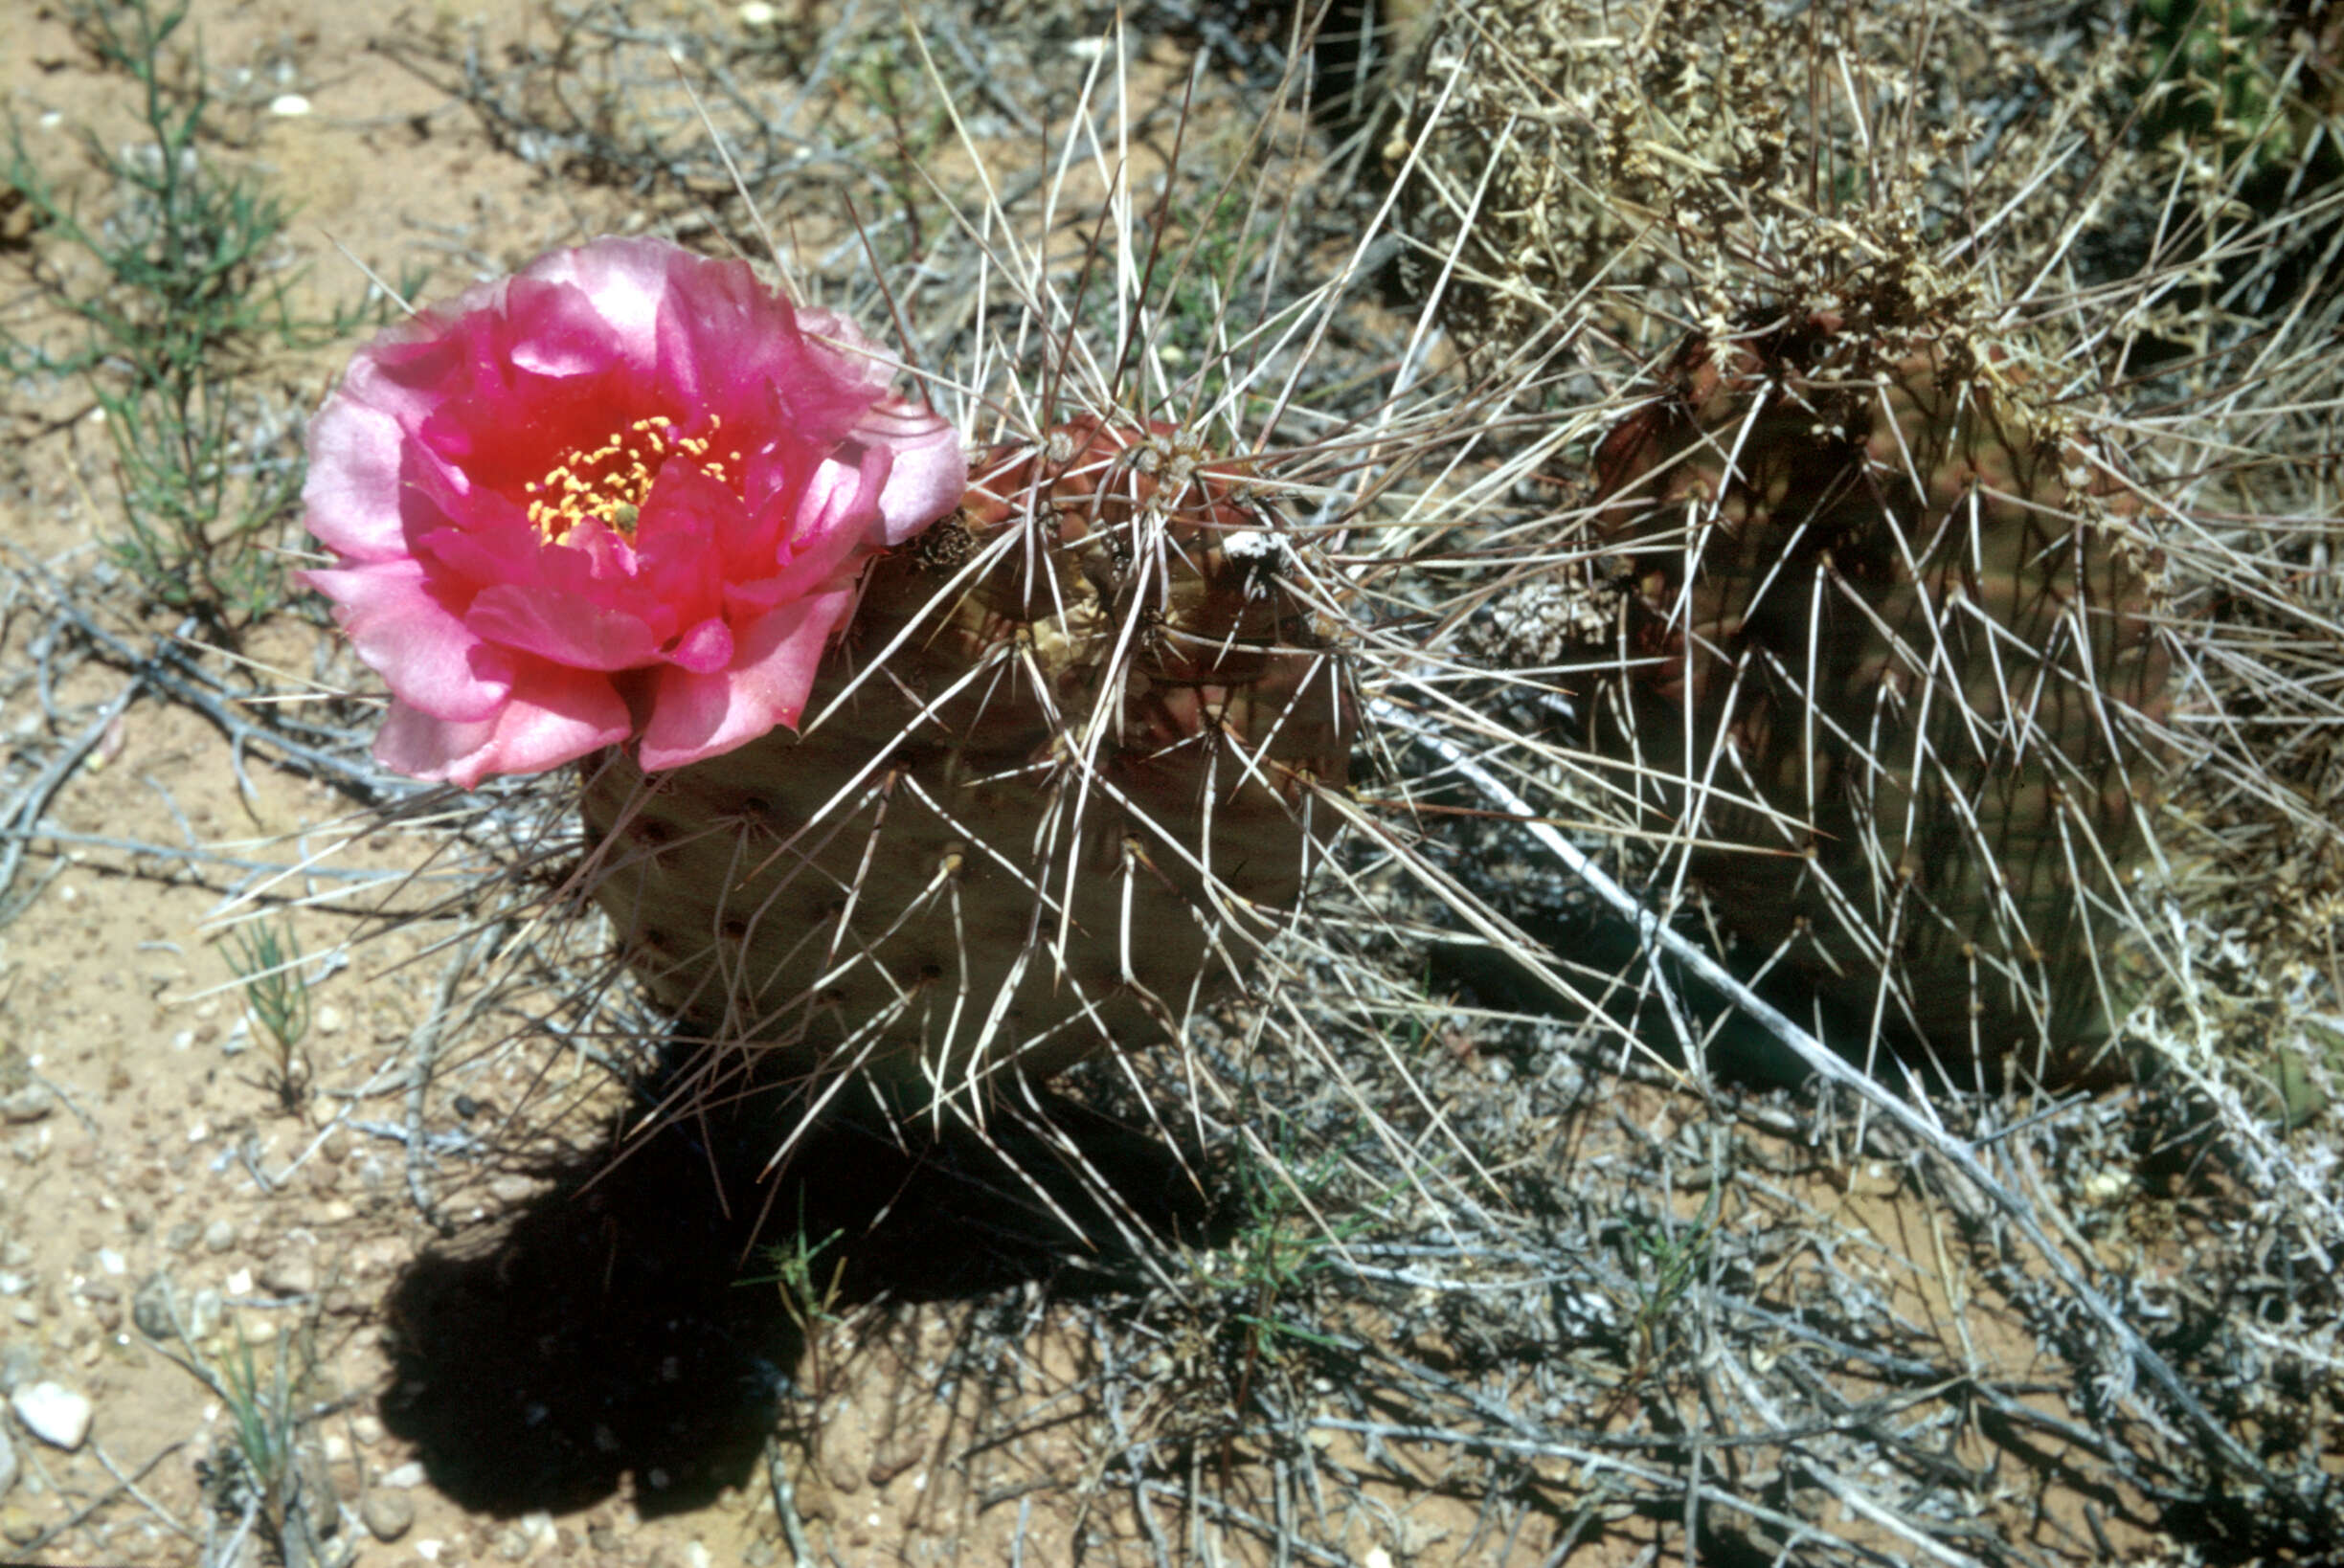 Image of Panhandle Prickly-pear